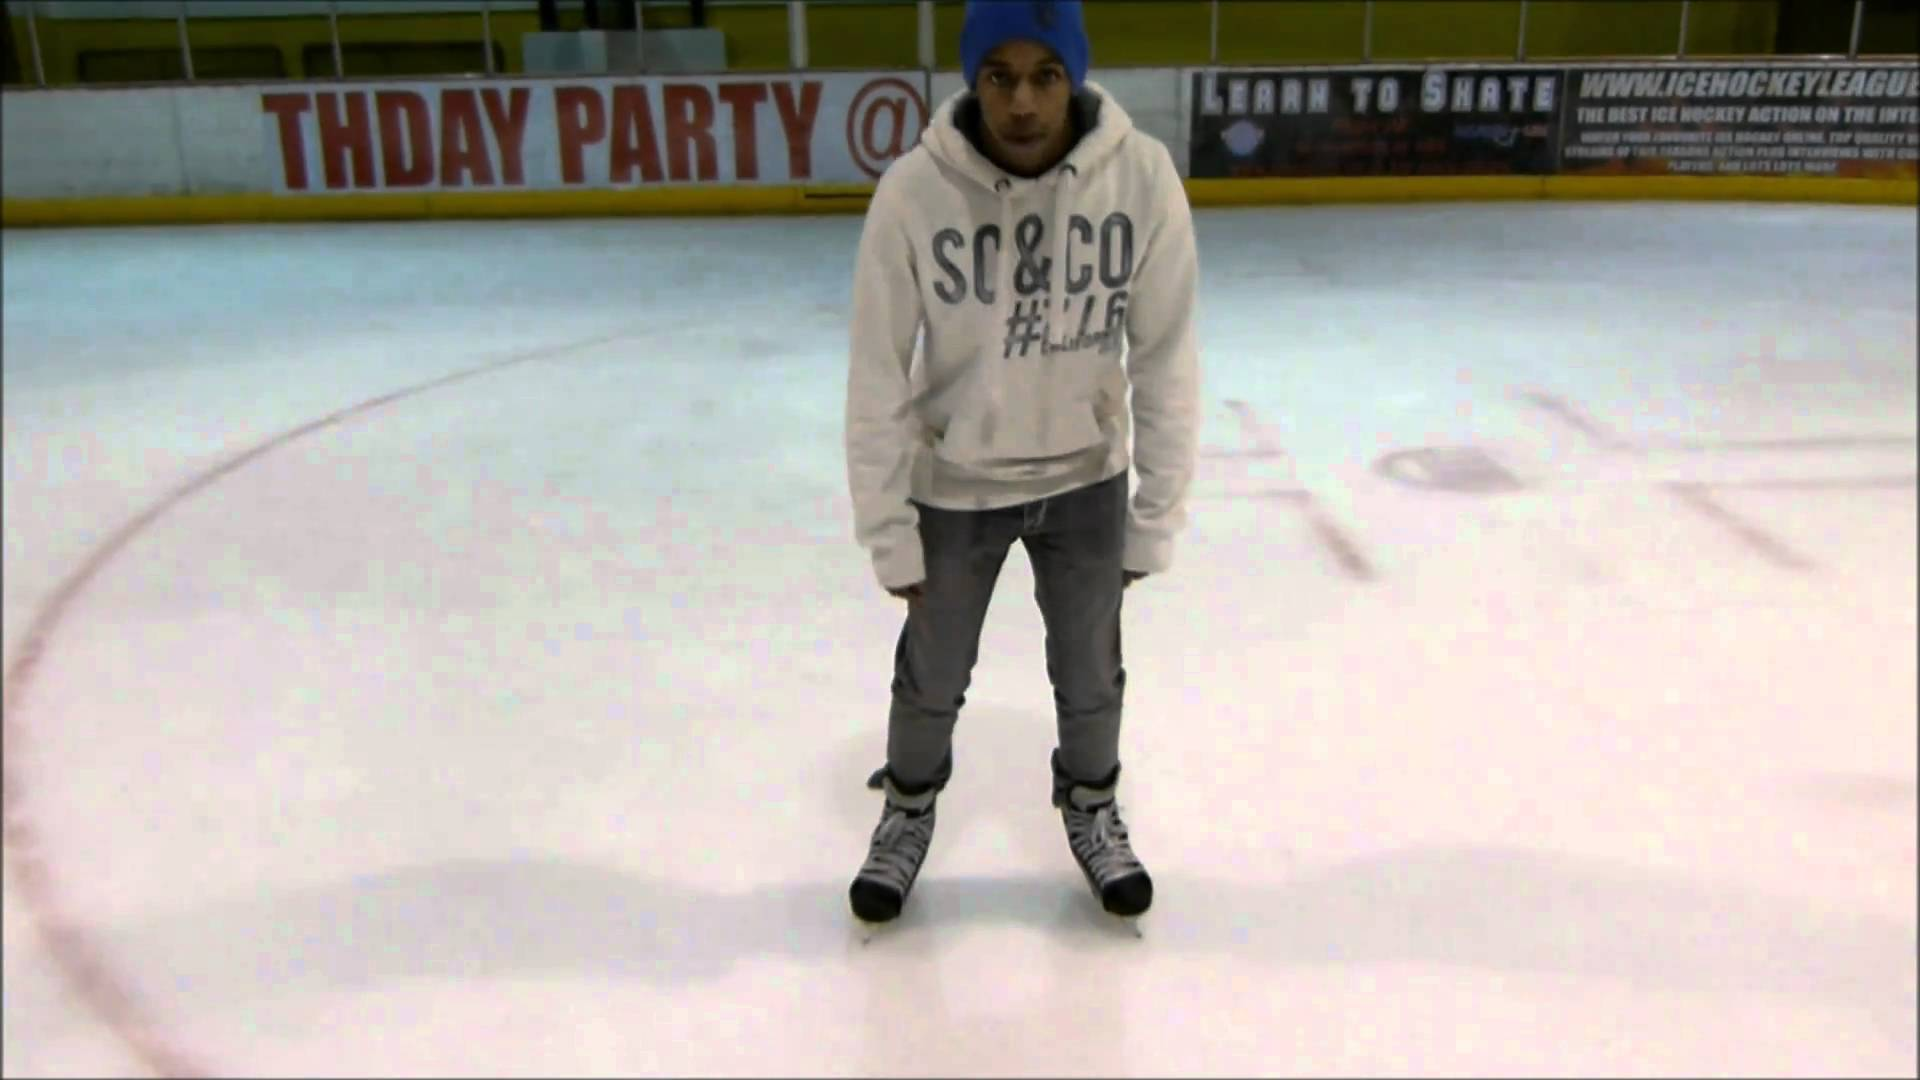 How To Do Forwards to Backwards Ice Skating Transition (Including Video Tutorial)